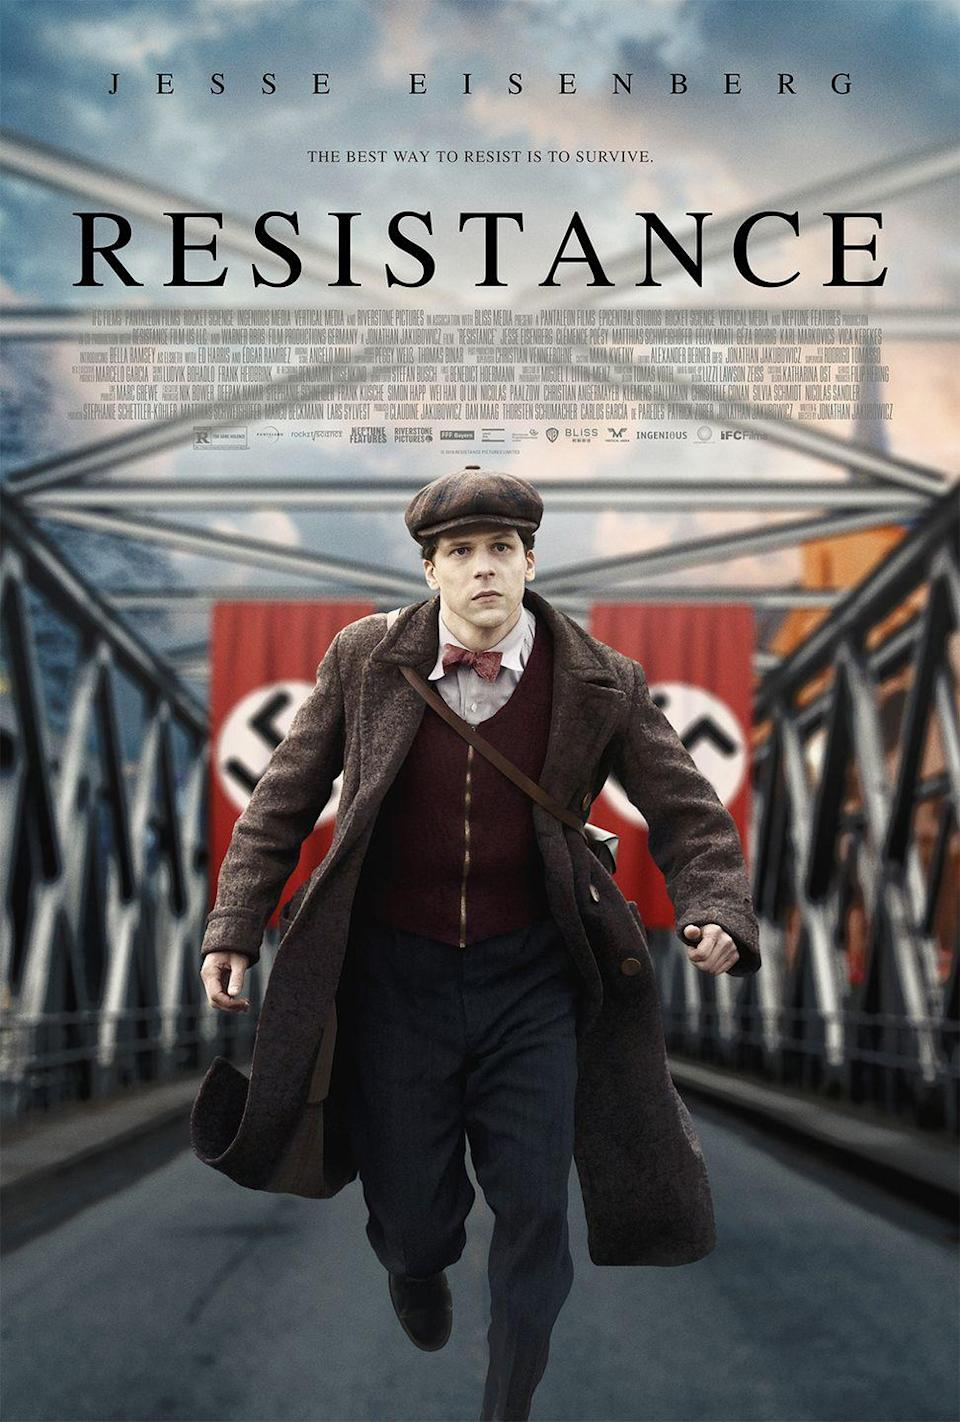 """<p>In this movie based on a true story, a mime named Marcel Marceau, played by Jesse Eisenberg, becomes an unlikely hero when he aids the French Resistance in helping to smuggle orphaned Jewish children threatened by the Nazis across the border to Switzerland. While Marceau's legacy has always revolved heavily around his mime art, this film shines a light on his humanitarian work.</p><p><a class=""""link rapid-noclick-resp"""" href=""""https://www.amazon.com/Resistance-Jesse-Eisenberg/dp/B0868SYSTF?tag=syn-yahoo-20&ascsubtag=%5Bartid%7C2140.g.27486022%5Bsrc%7Cyahoo-us"""" rel=""""nofollow noopener"""" target=""""_blank"""" data-ylk=""""slk:Watch Here"""">Watch Here</a></p>"""